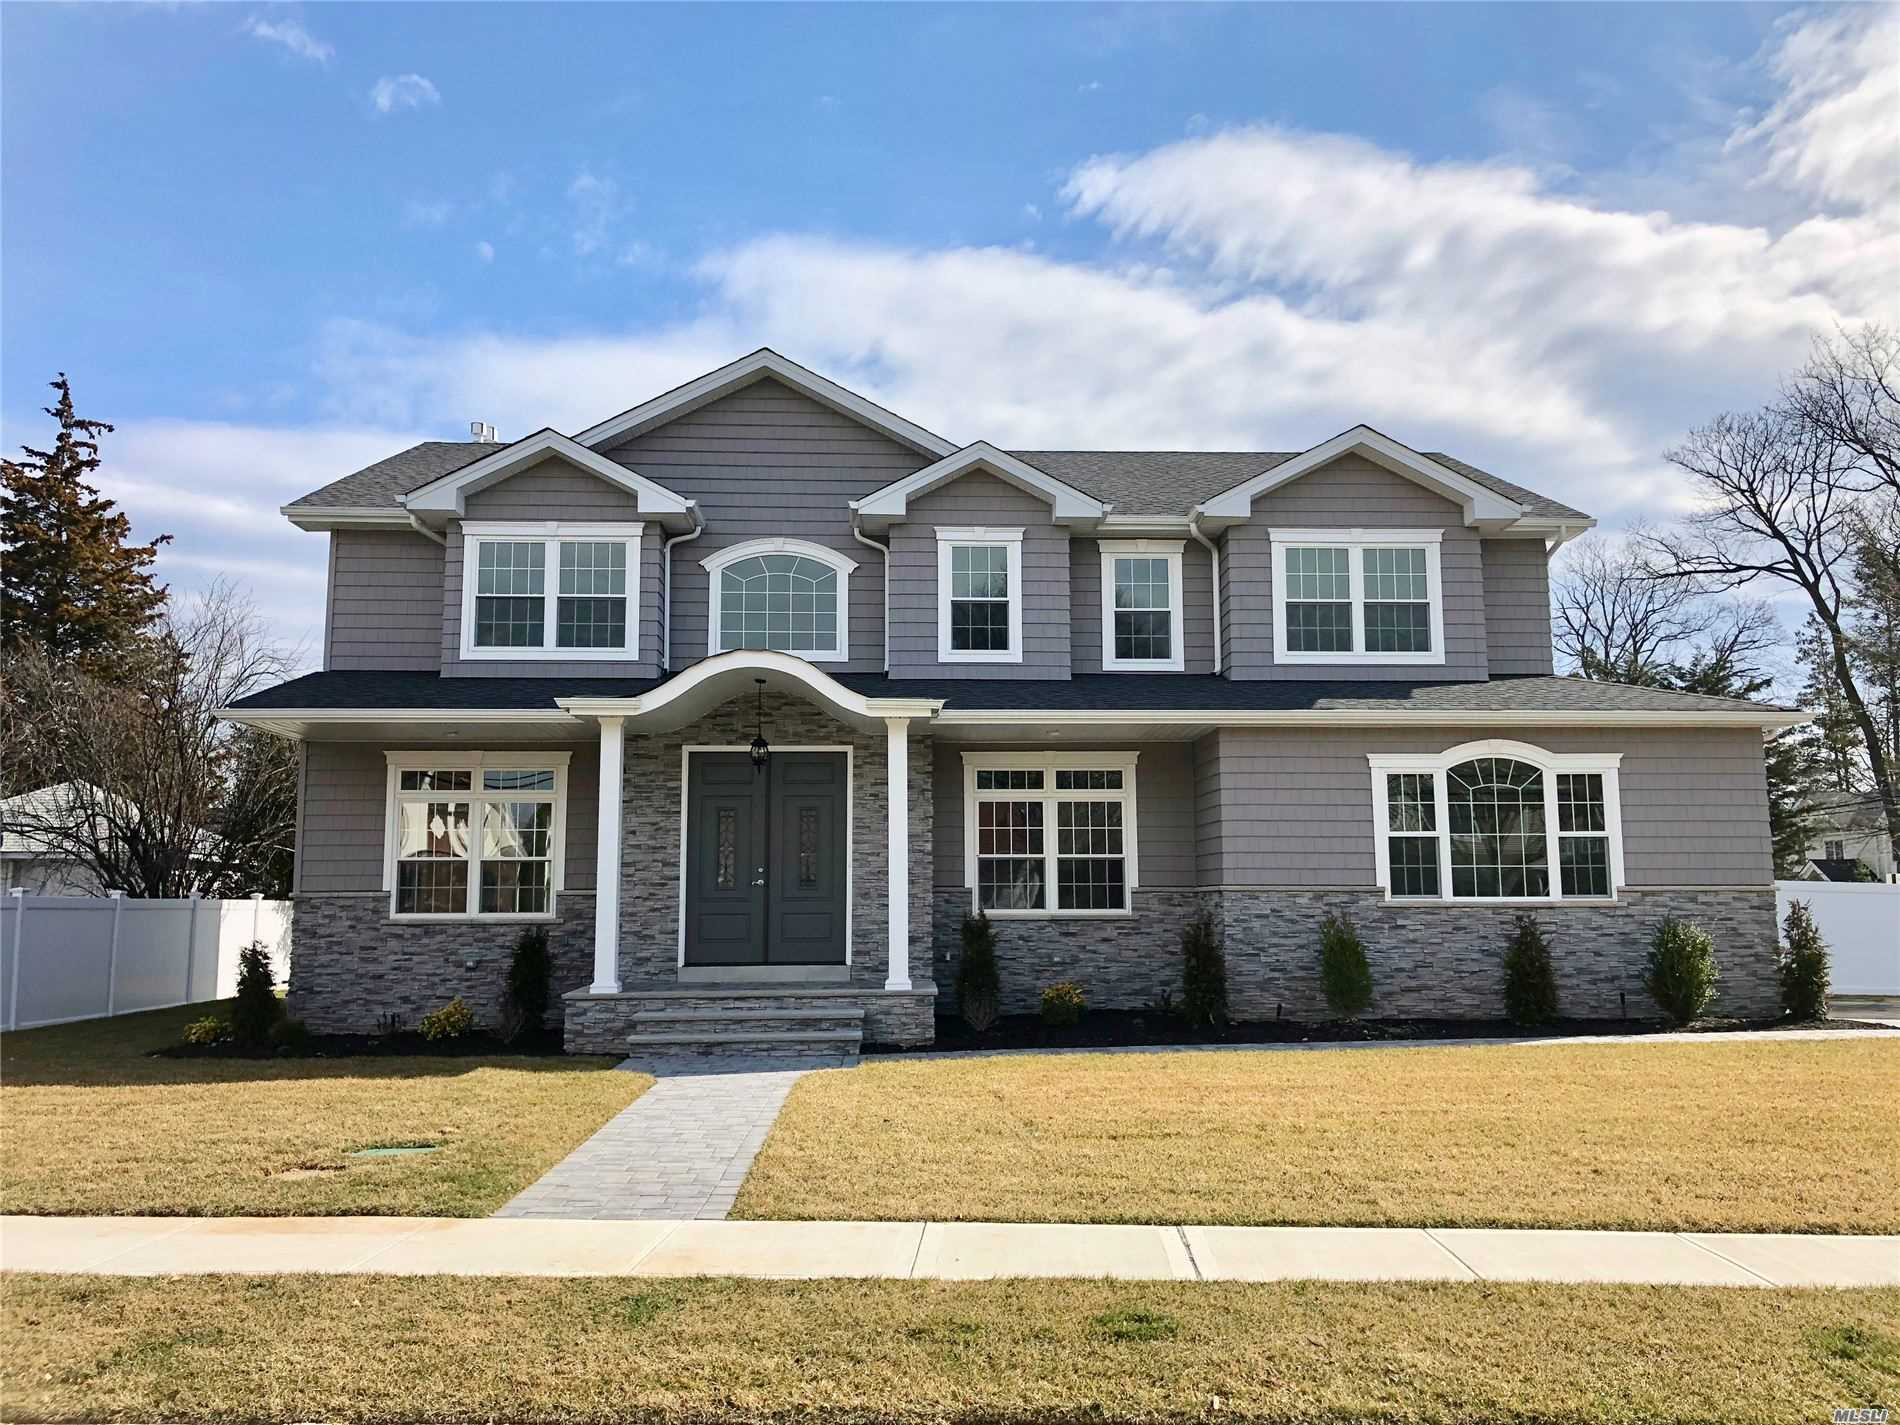 Prime North Syosset! 3800 Sqf Home, Boosting 5 Bedrooms, 4.5 Bathrooms, , Sun-Filled Master Br W/Tray Ceiling His And Hers Wic, Designer Kitchen W Center Island And Ss Appliances, Pantry .Bedroom On Mail Level With Full Bath . Den With Fire Place , Laundry , Fenced Back Yard . Being Built ...